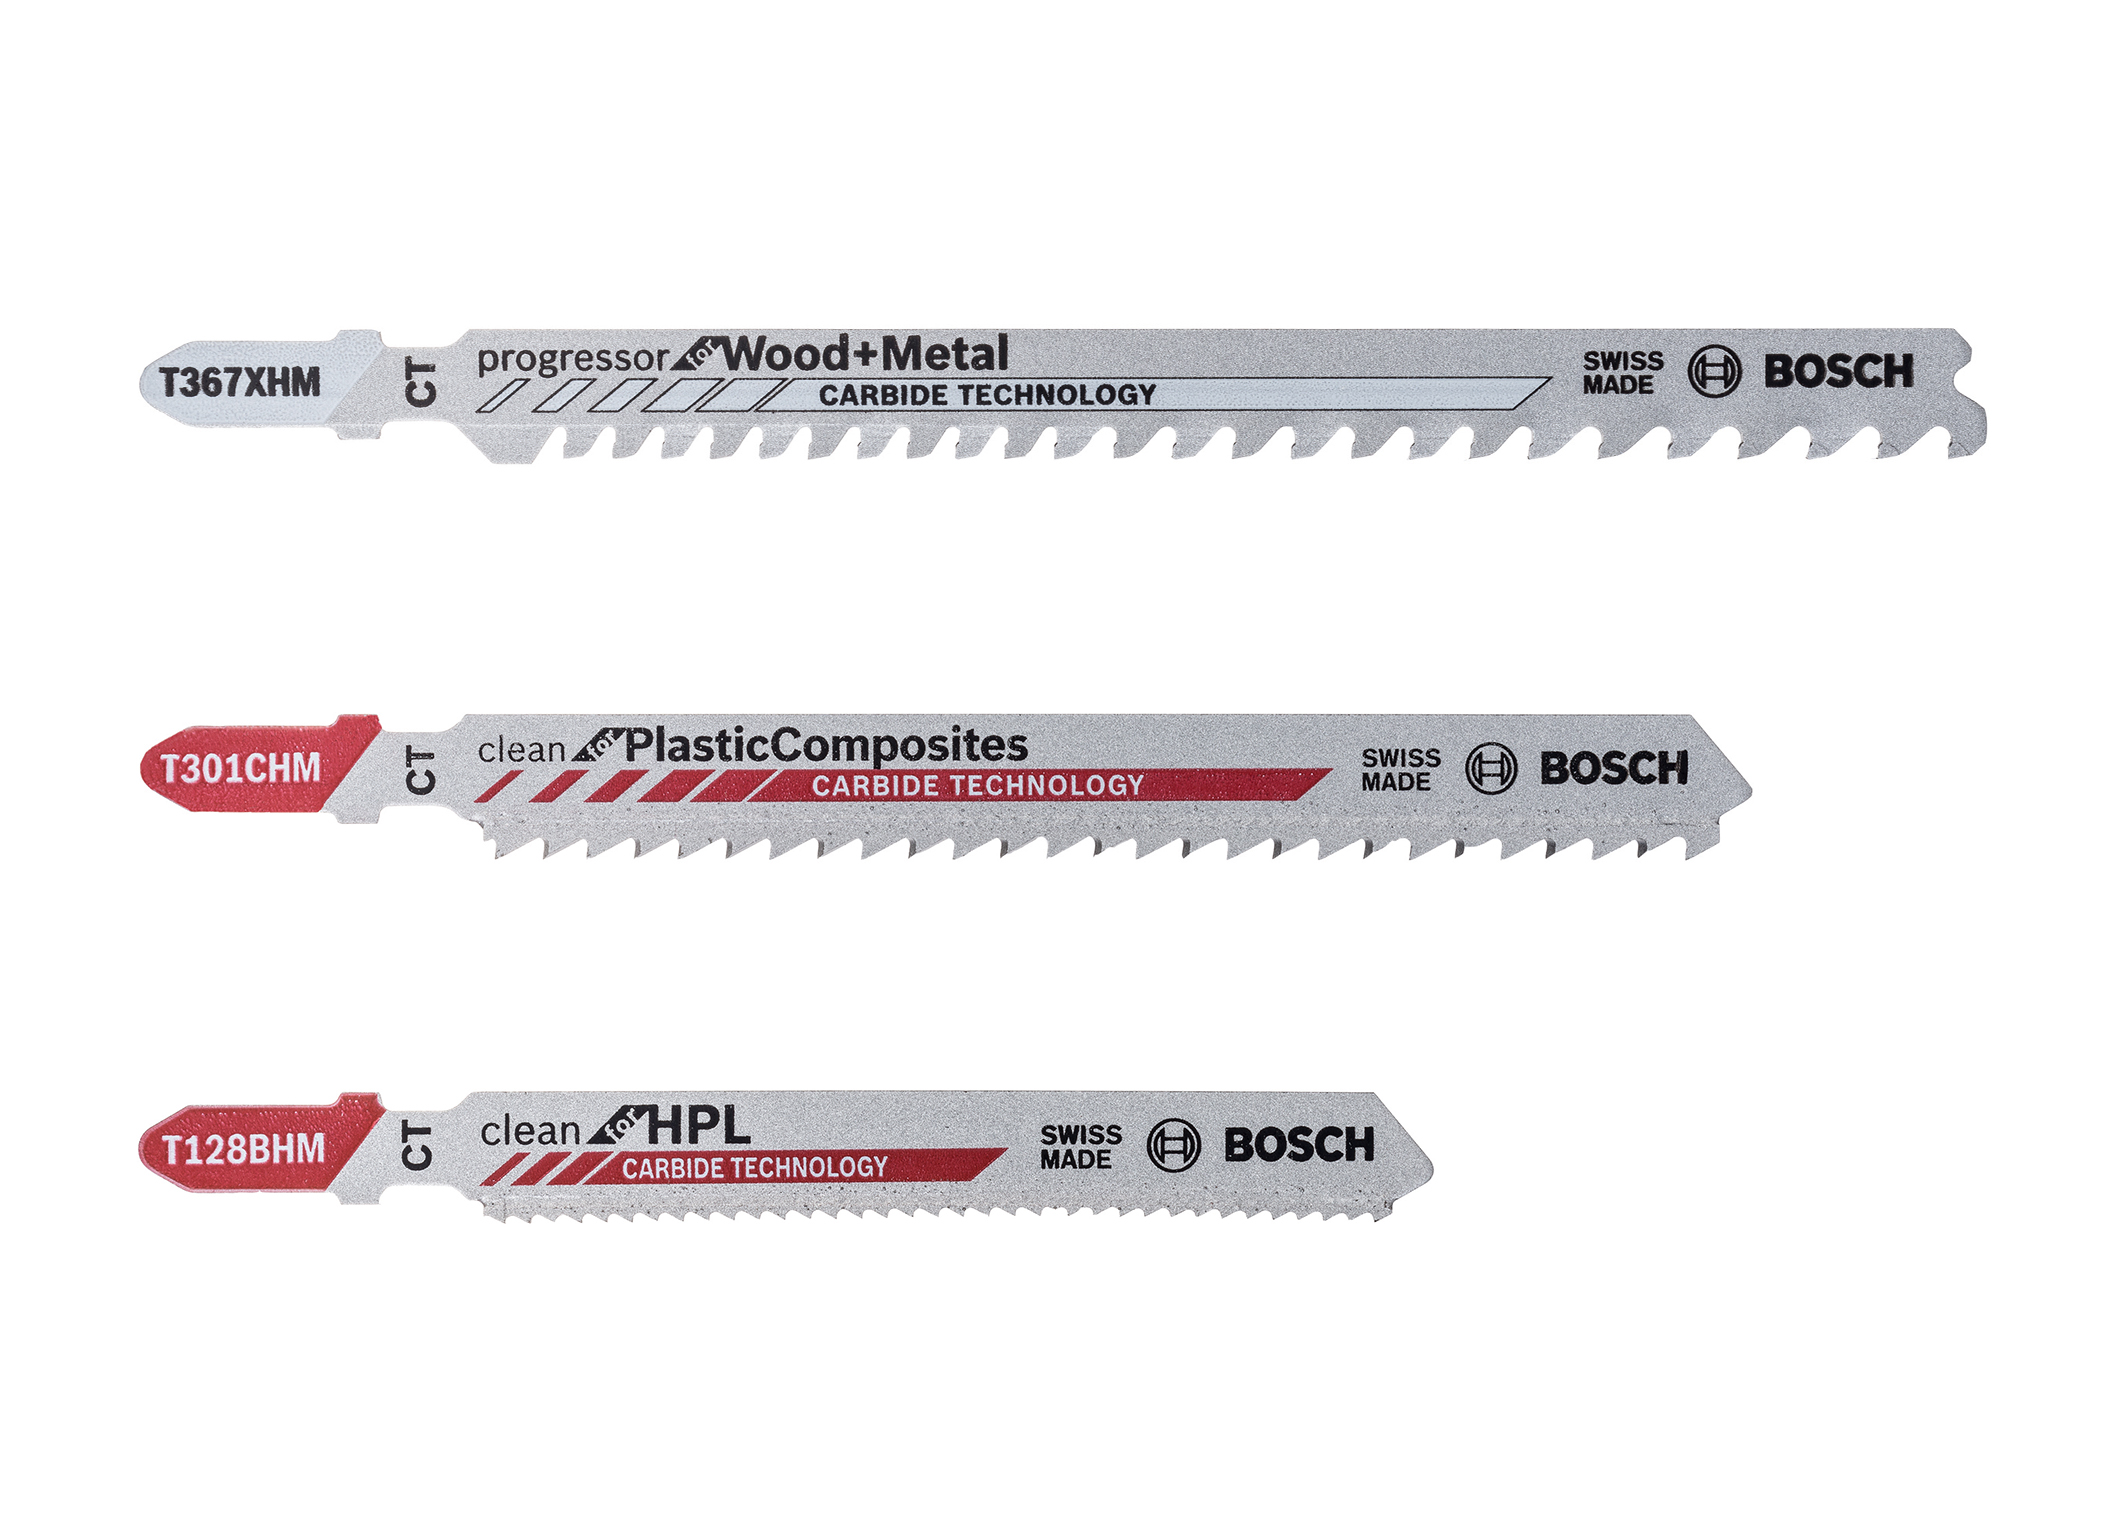 For an even wider range of applications: new Bosch jigsaw blades with carbide technology